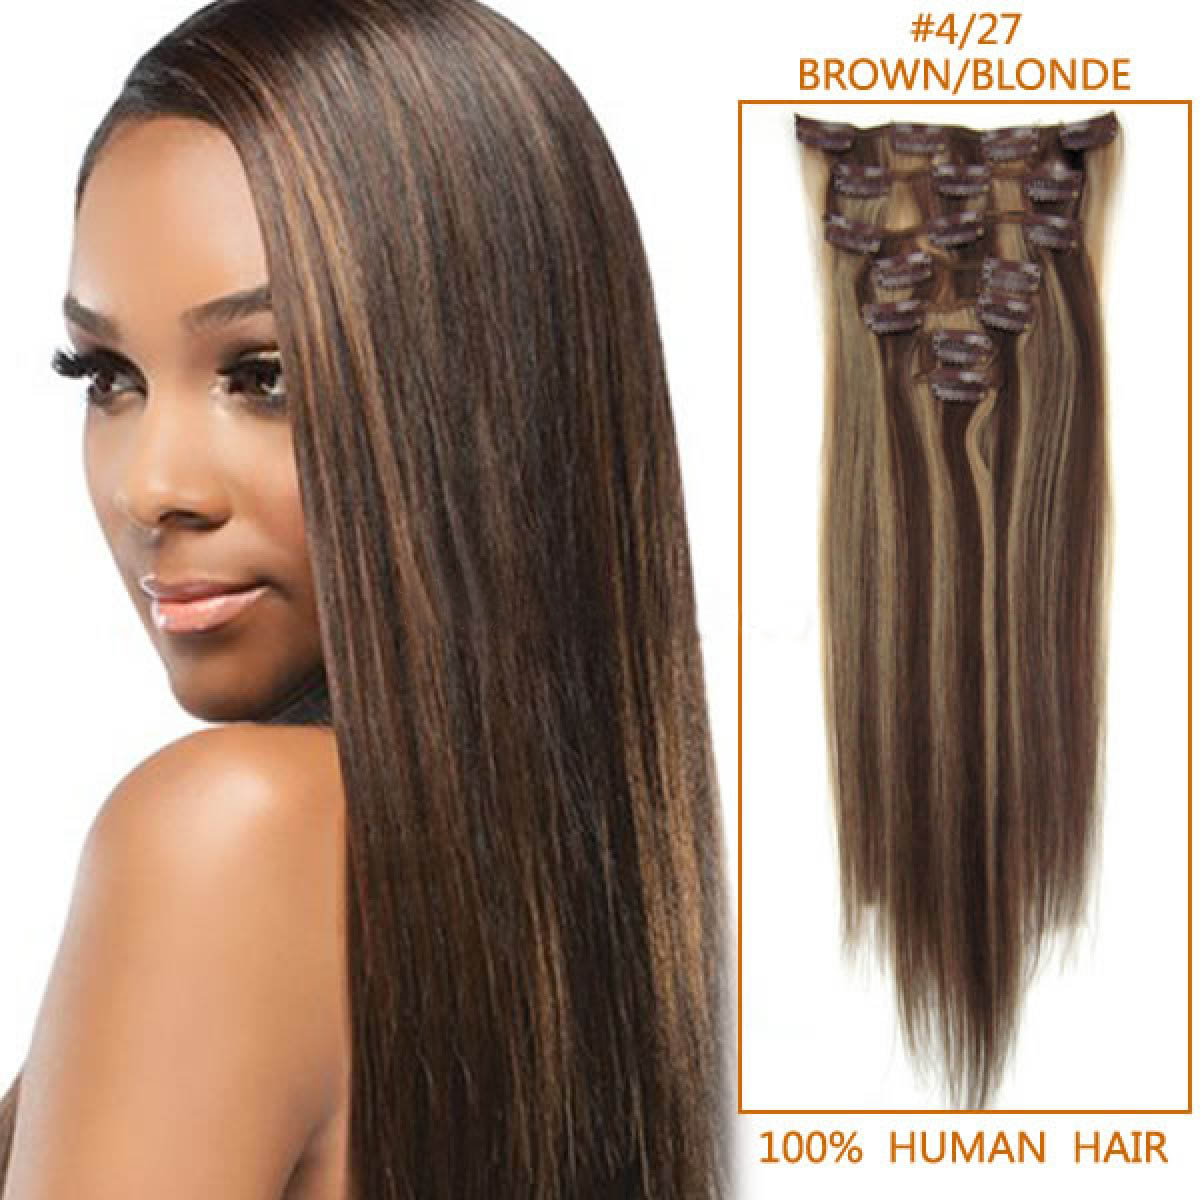 18 Inch 427 Brownblonde Clip In Human Hair Extensions 8pcs